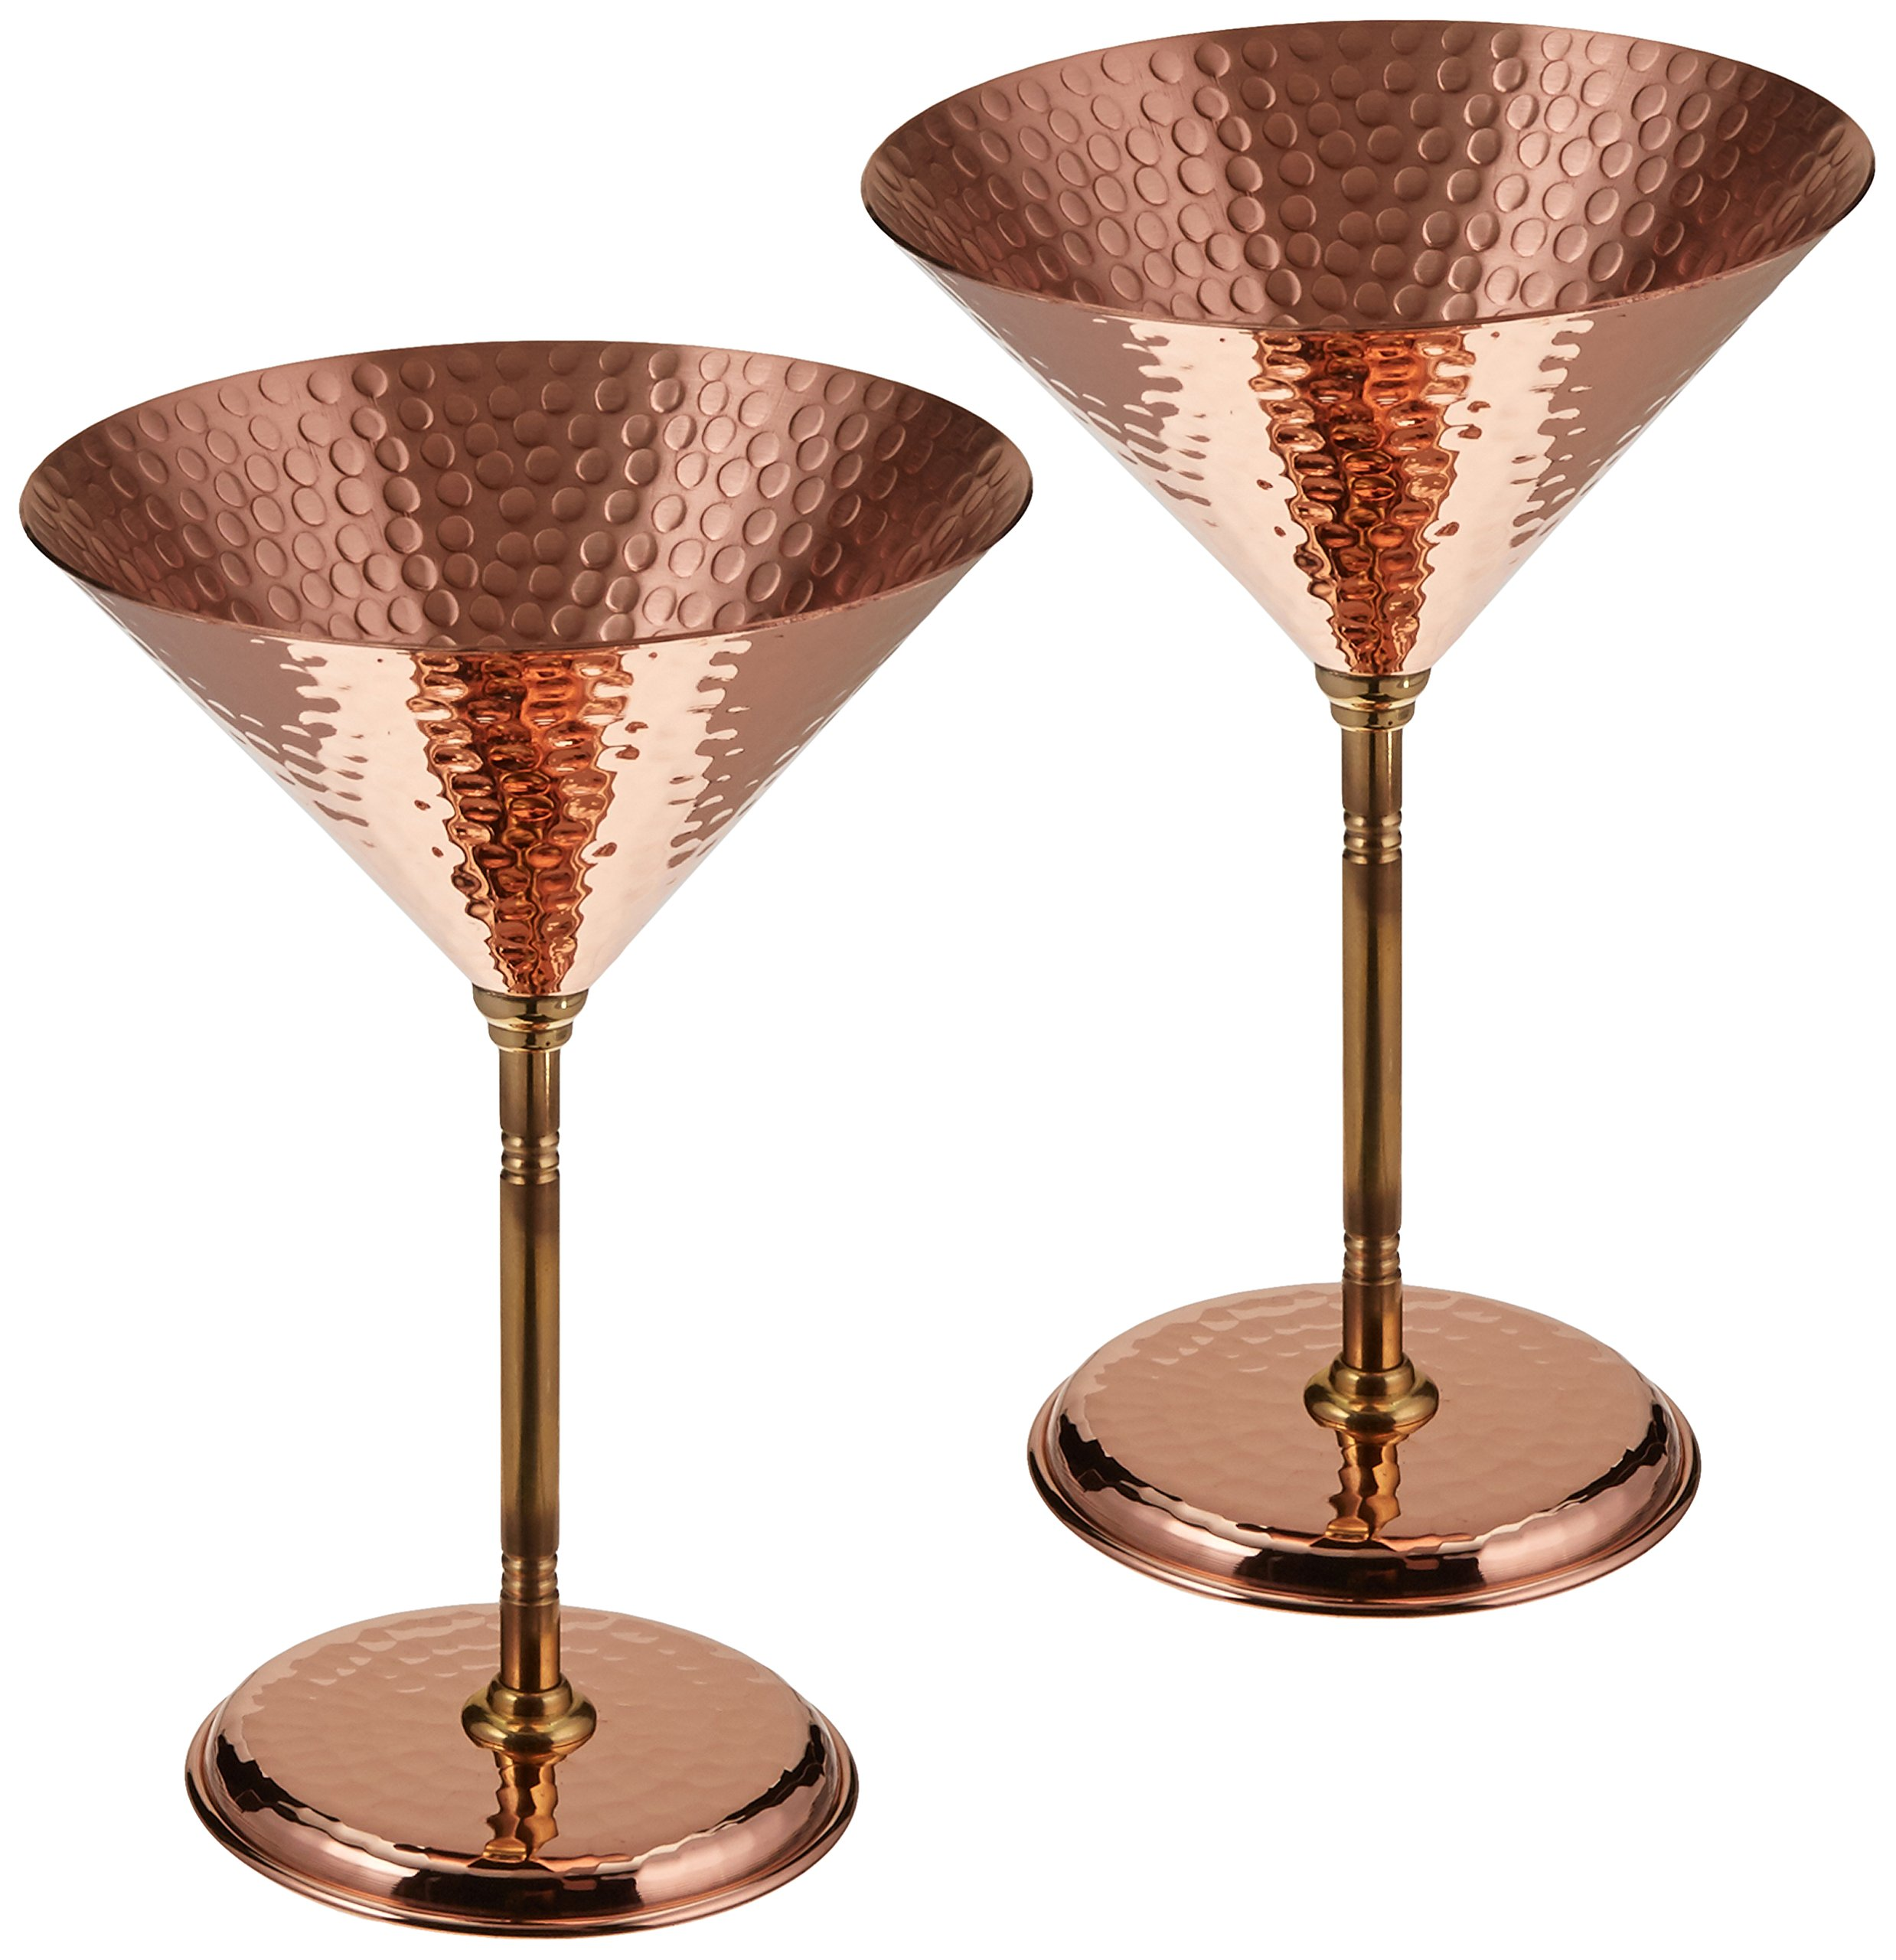 2 X CopperBull Gorgeous Hammered Copper Martini Goblets Glasses, 10 Ounces (Unlined Copper ) by DEMMEX